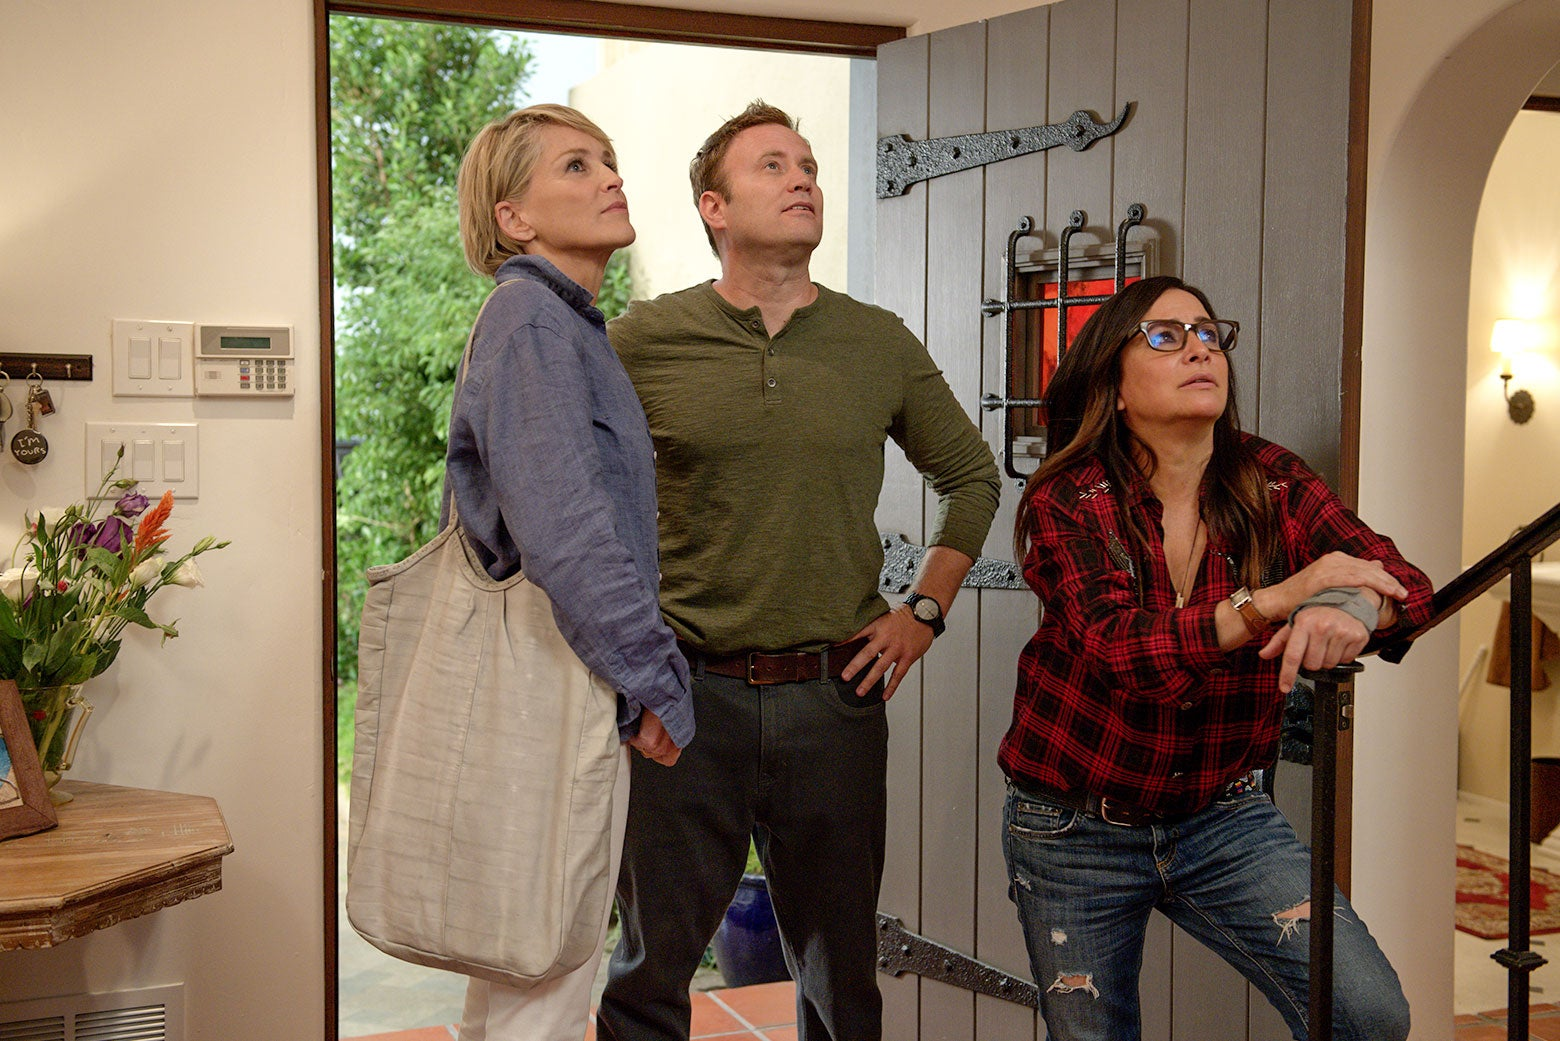 Sharon Stone, Greg Cromer and Pamela Adlon in a still from Better Things Season 3, Episode 3. They're all standing in a doorway looking off-camera; Adlon is leaning on a bannister.